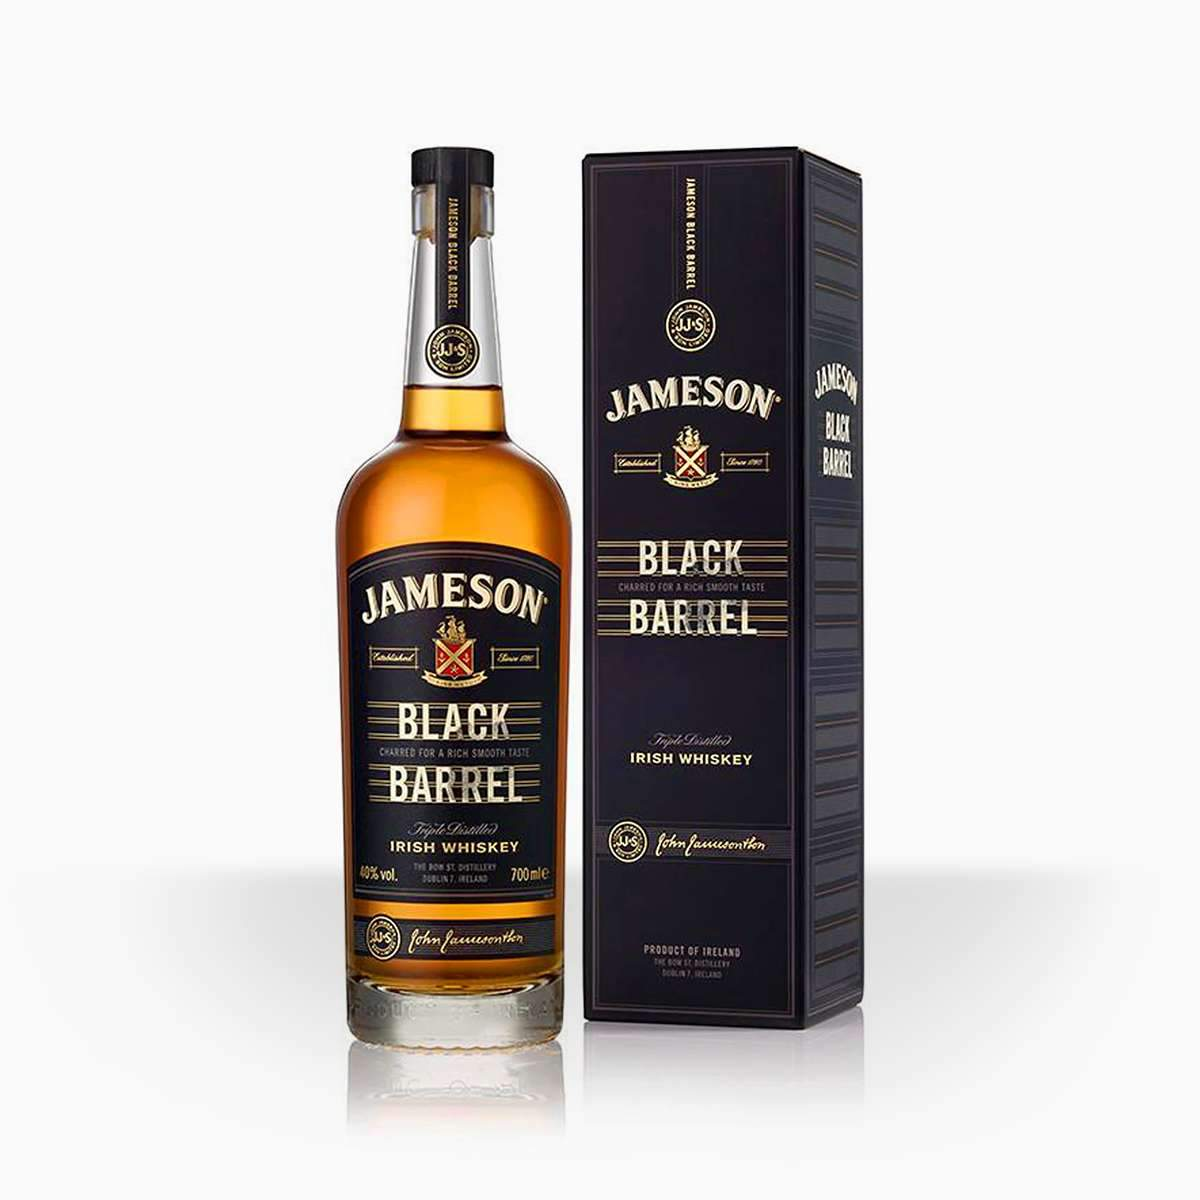 Whisky Jameson Black Barrel 40% 0,7l